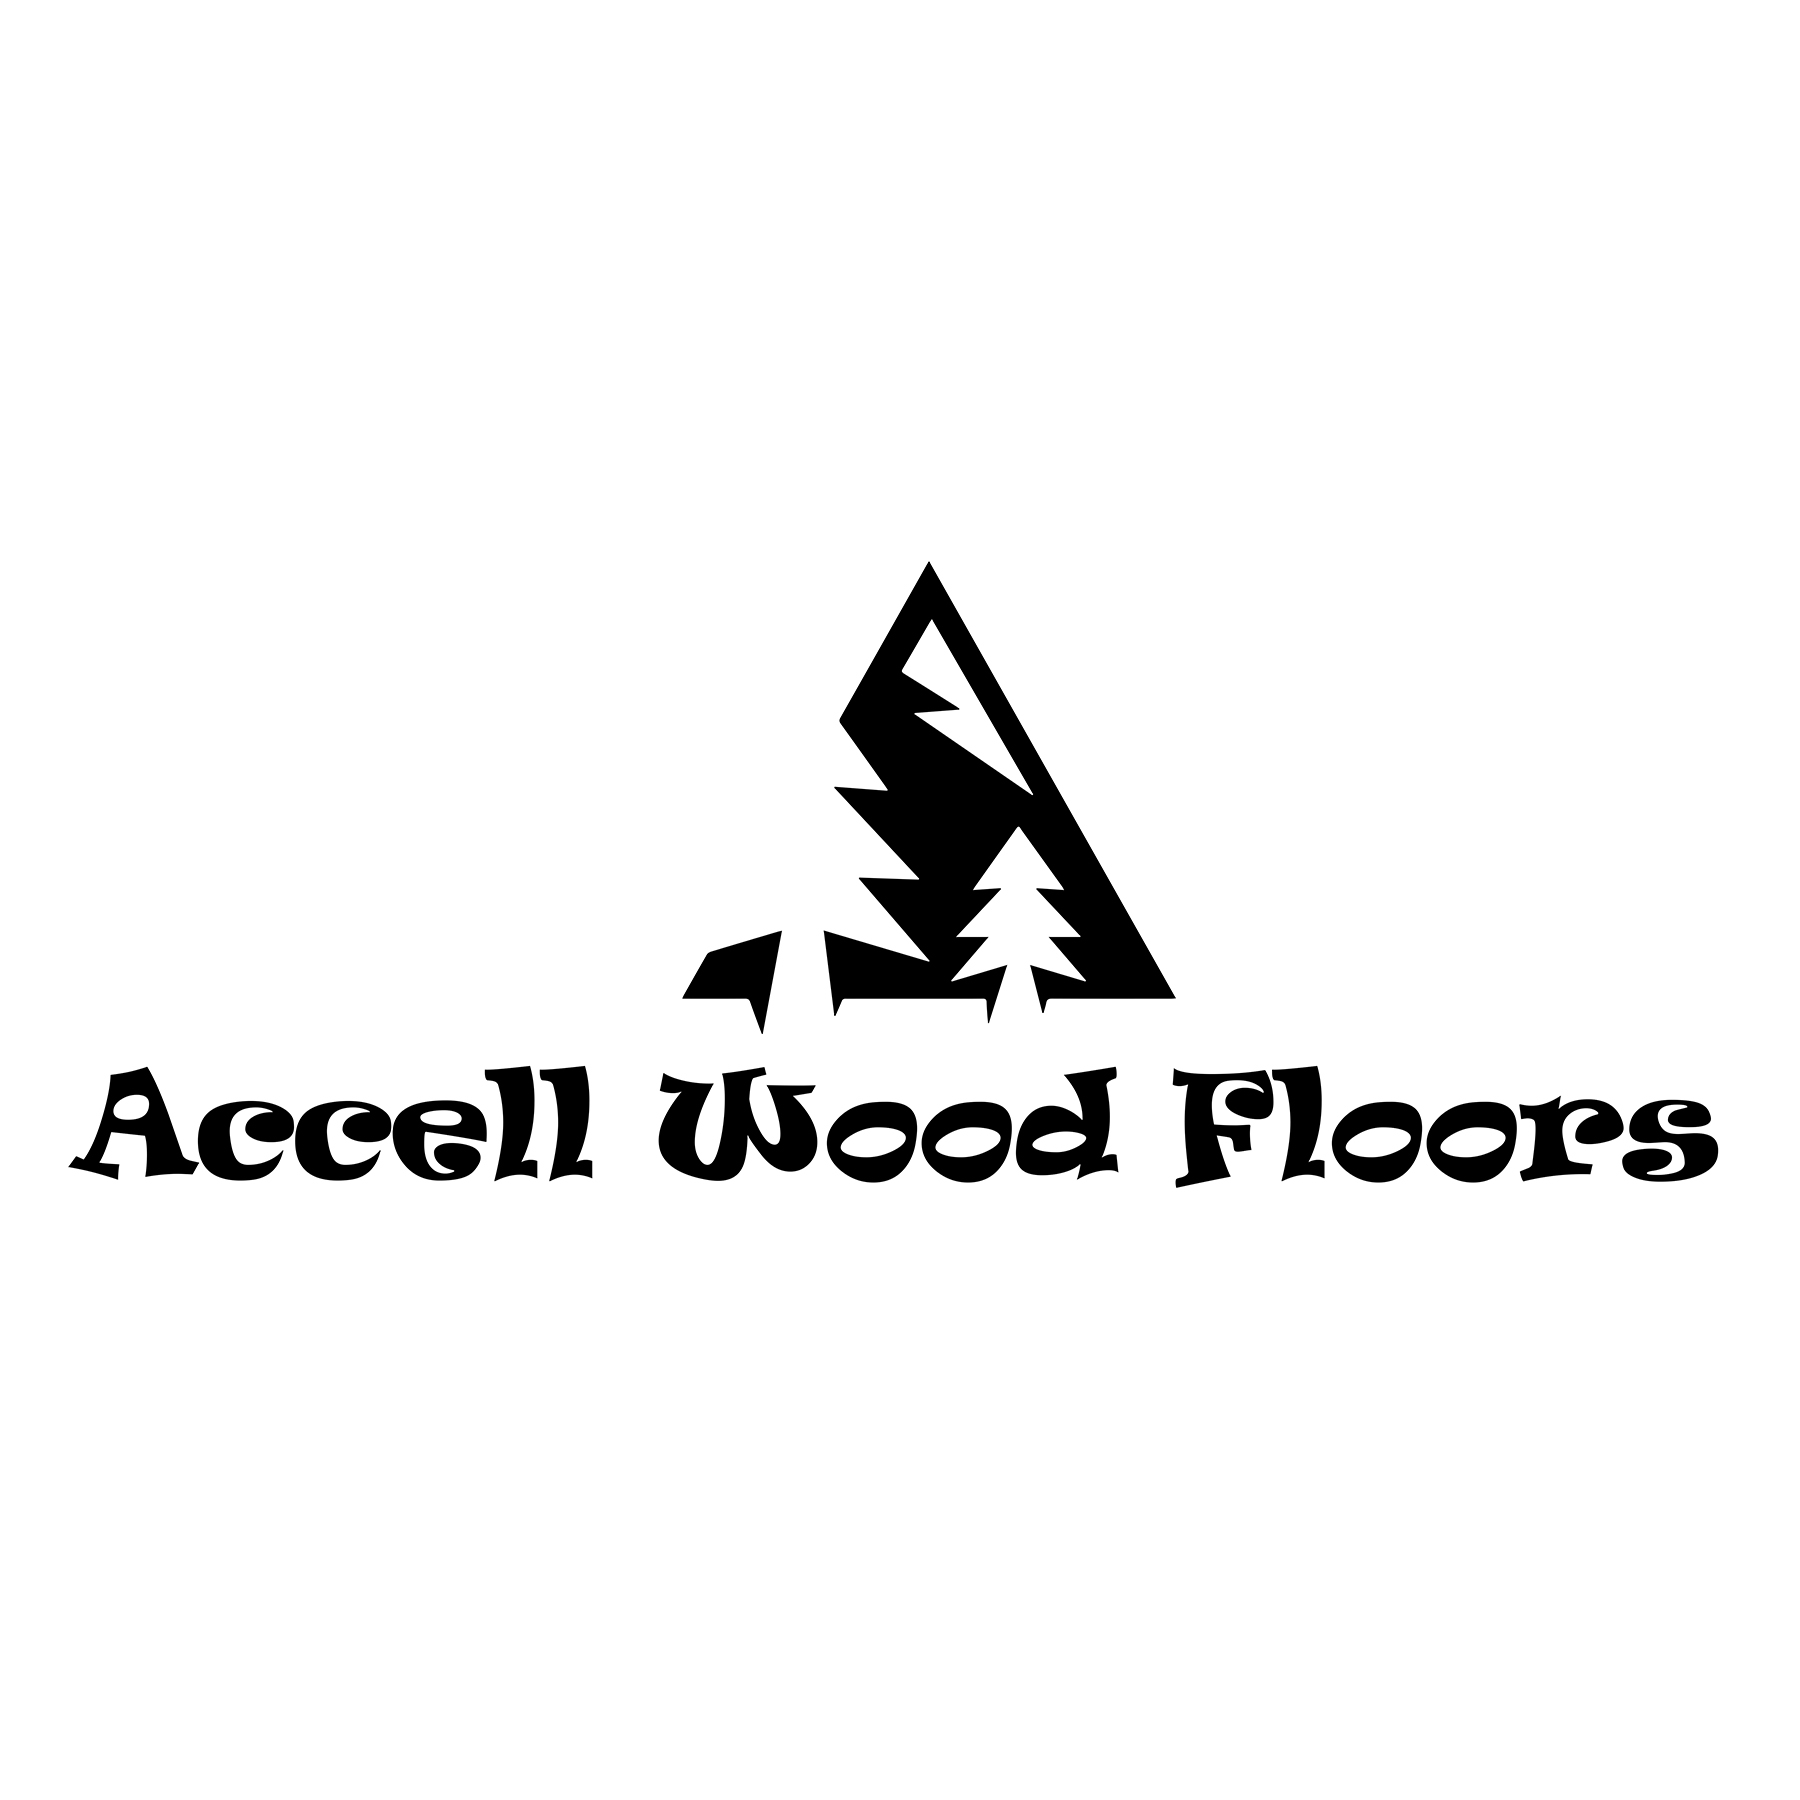 Accell Wood Floors